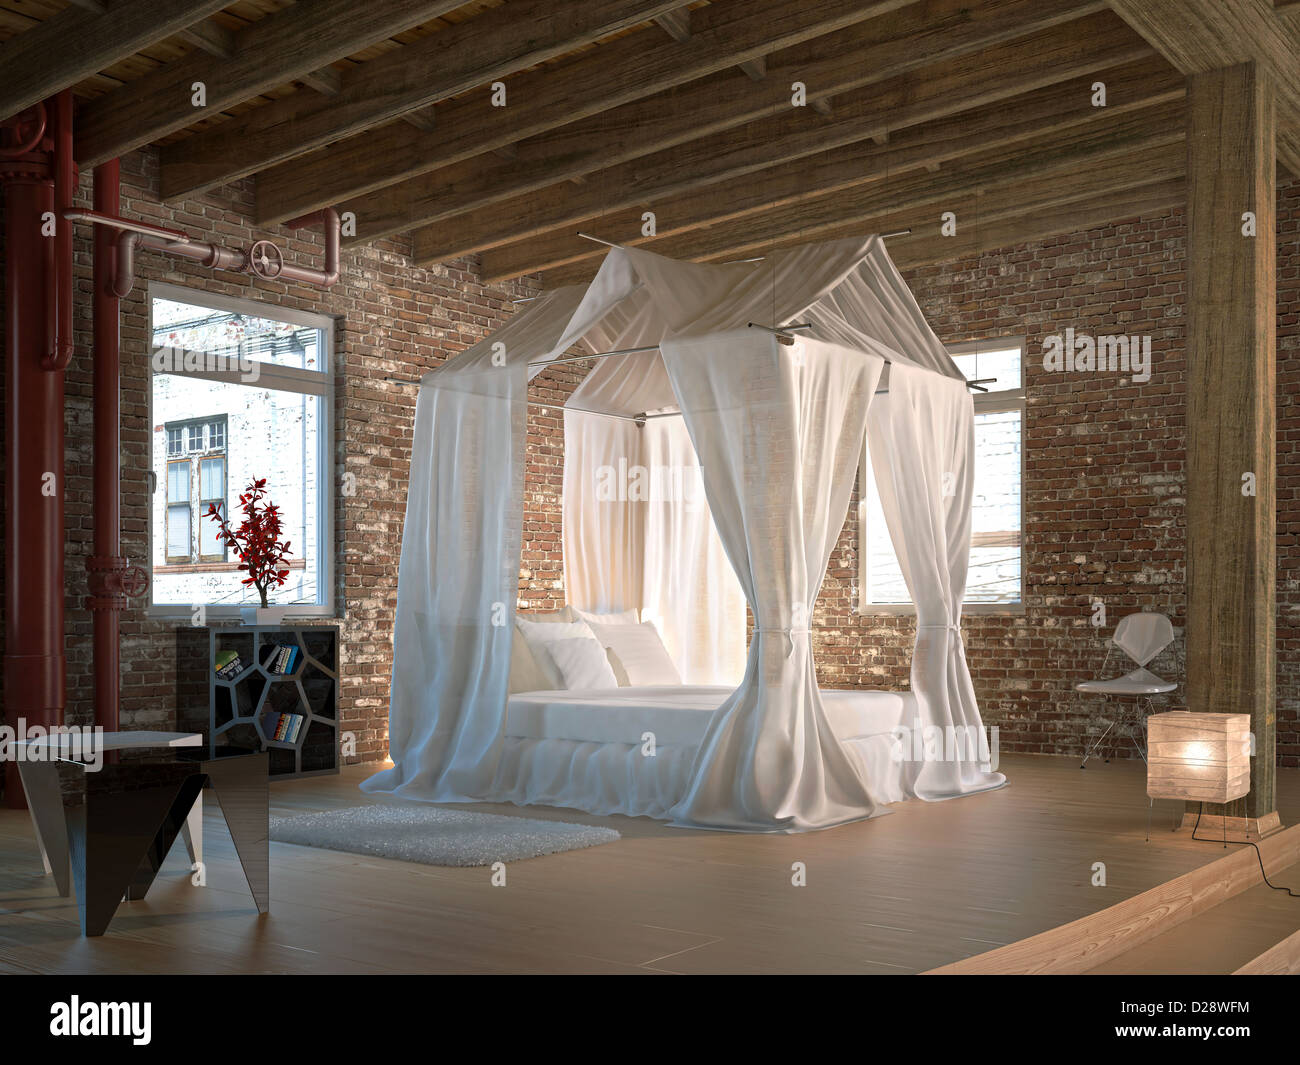 Luxury loft bedroom, with four poster bed. Wooden floor and ceiling and walls made of old bricks, with some pipelines. - Stock Image